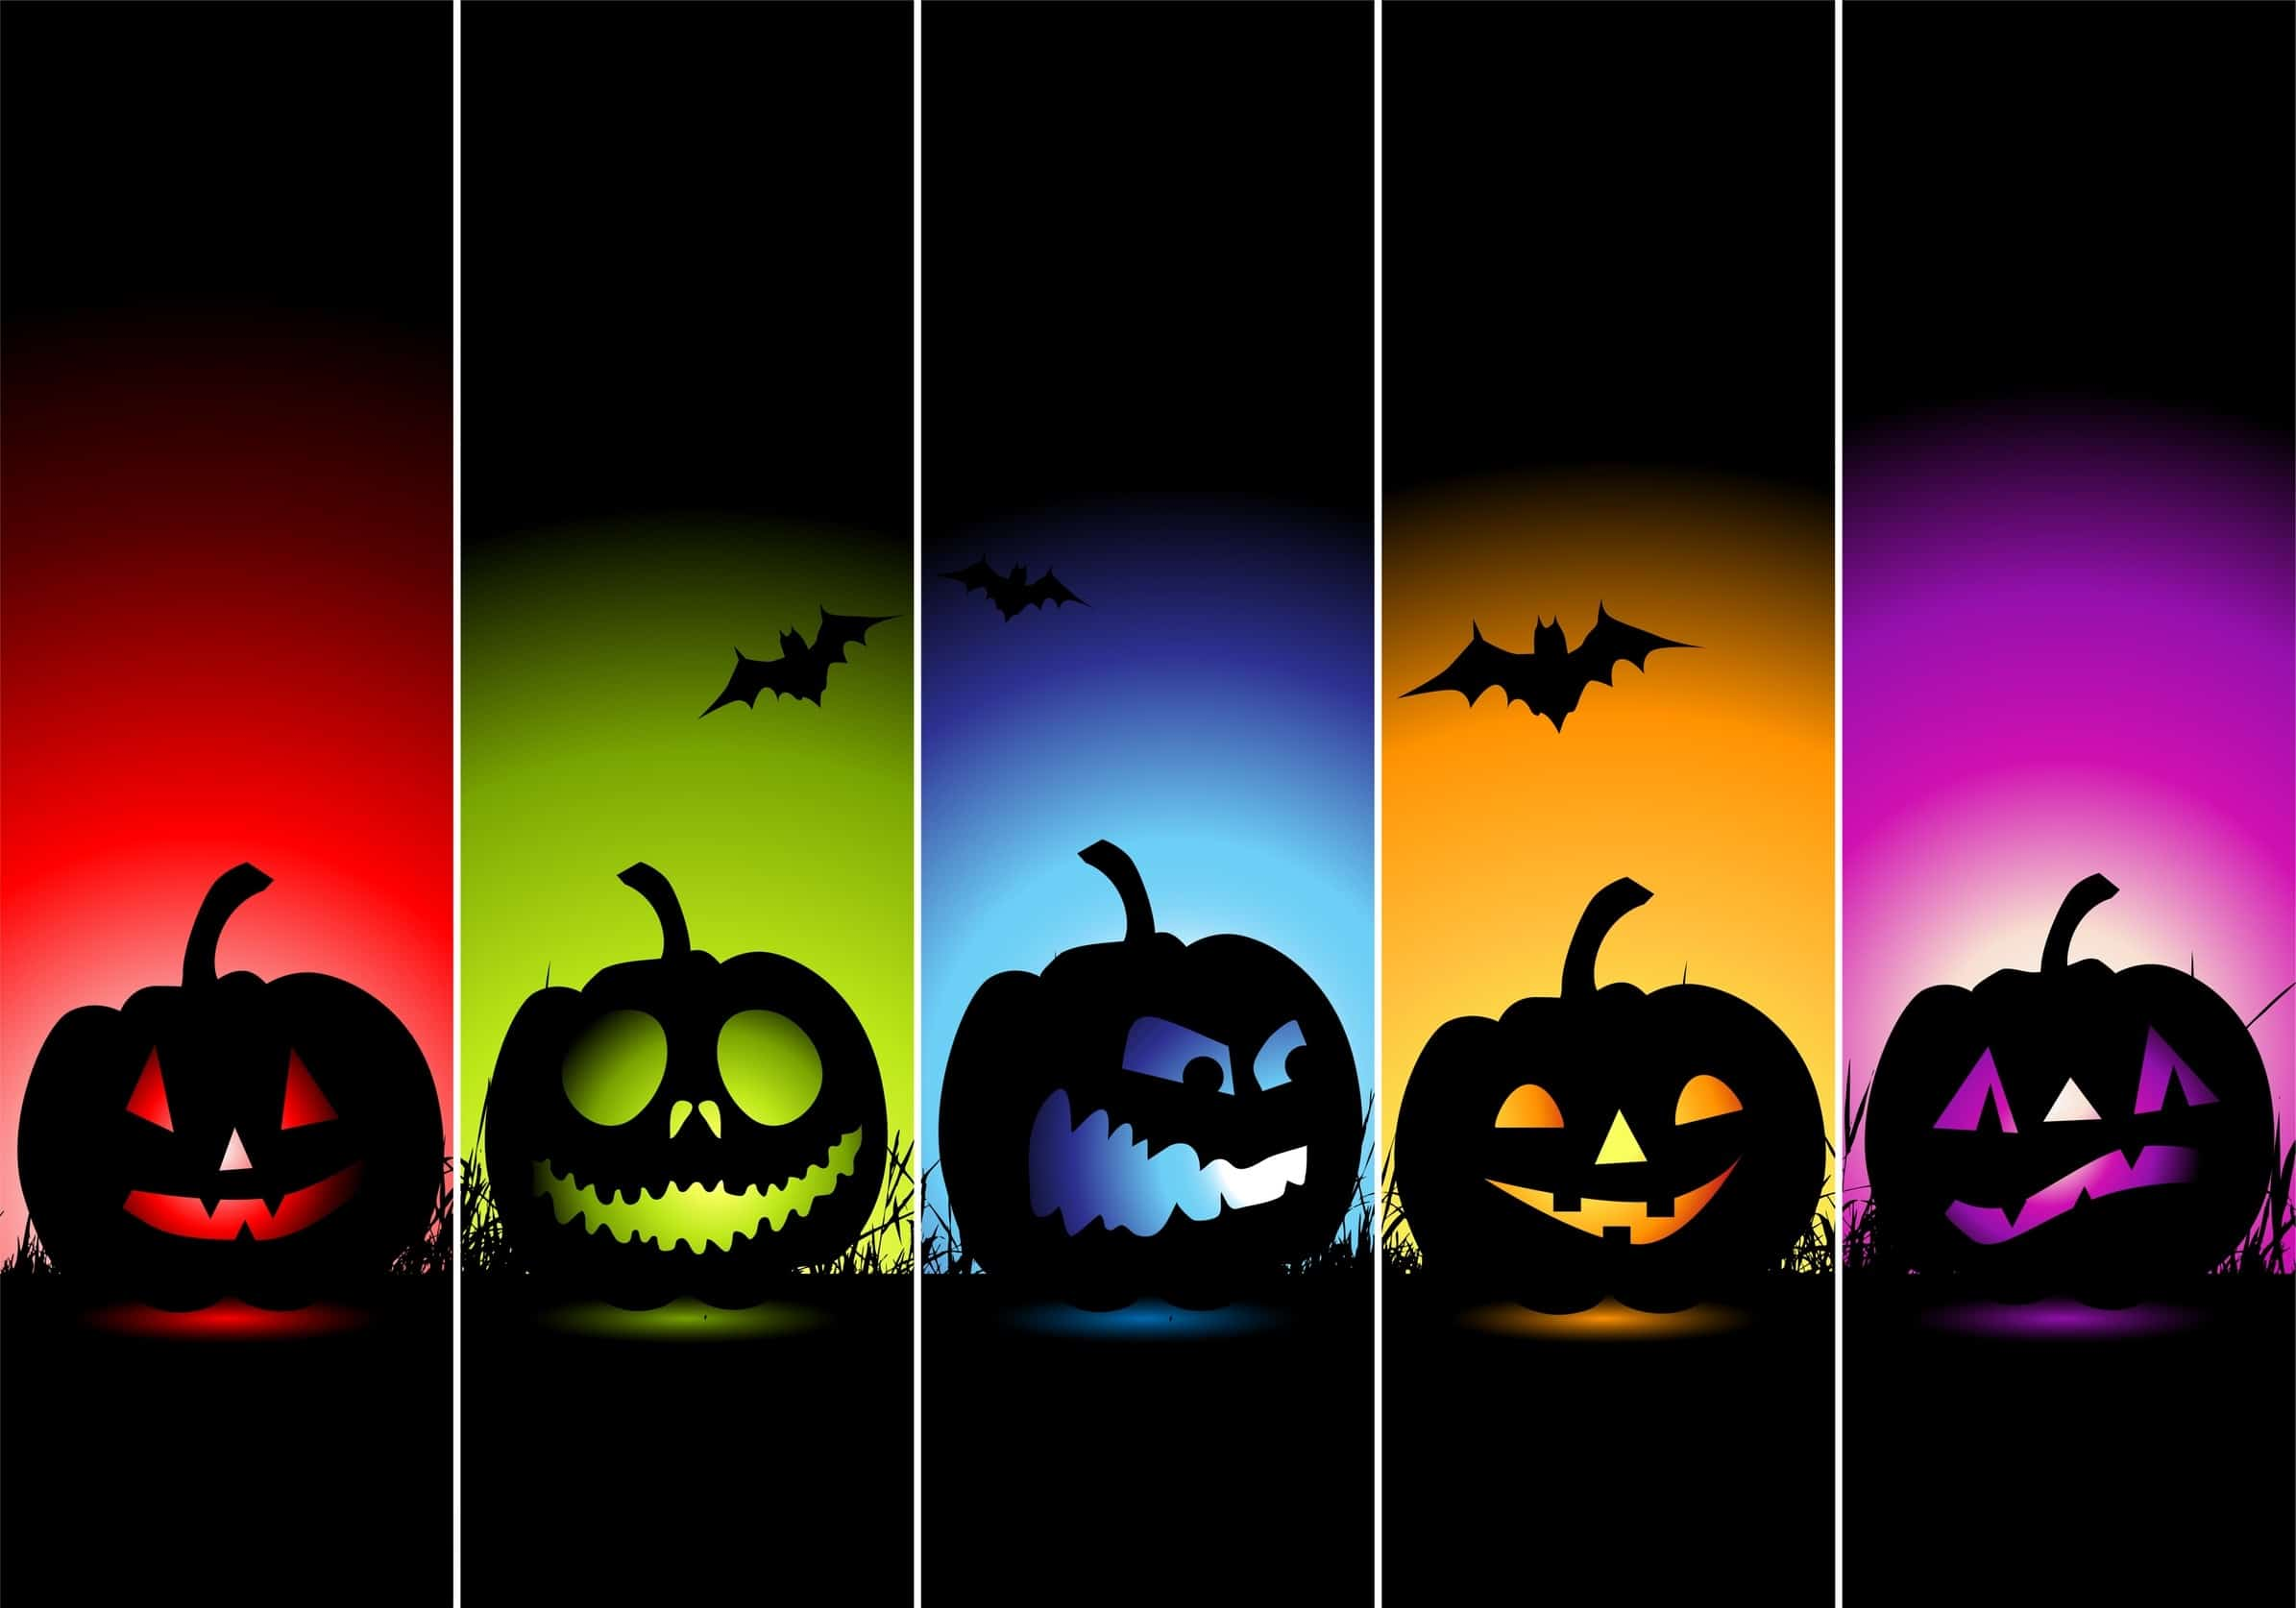 Cool Halloween Pumpkin Backgrounds For Ipad